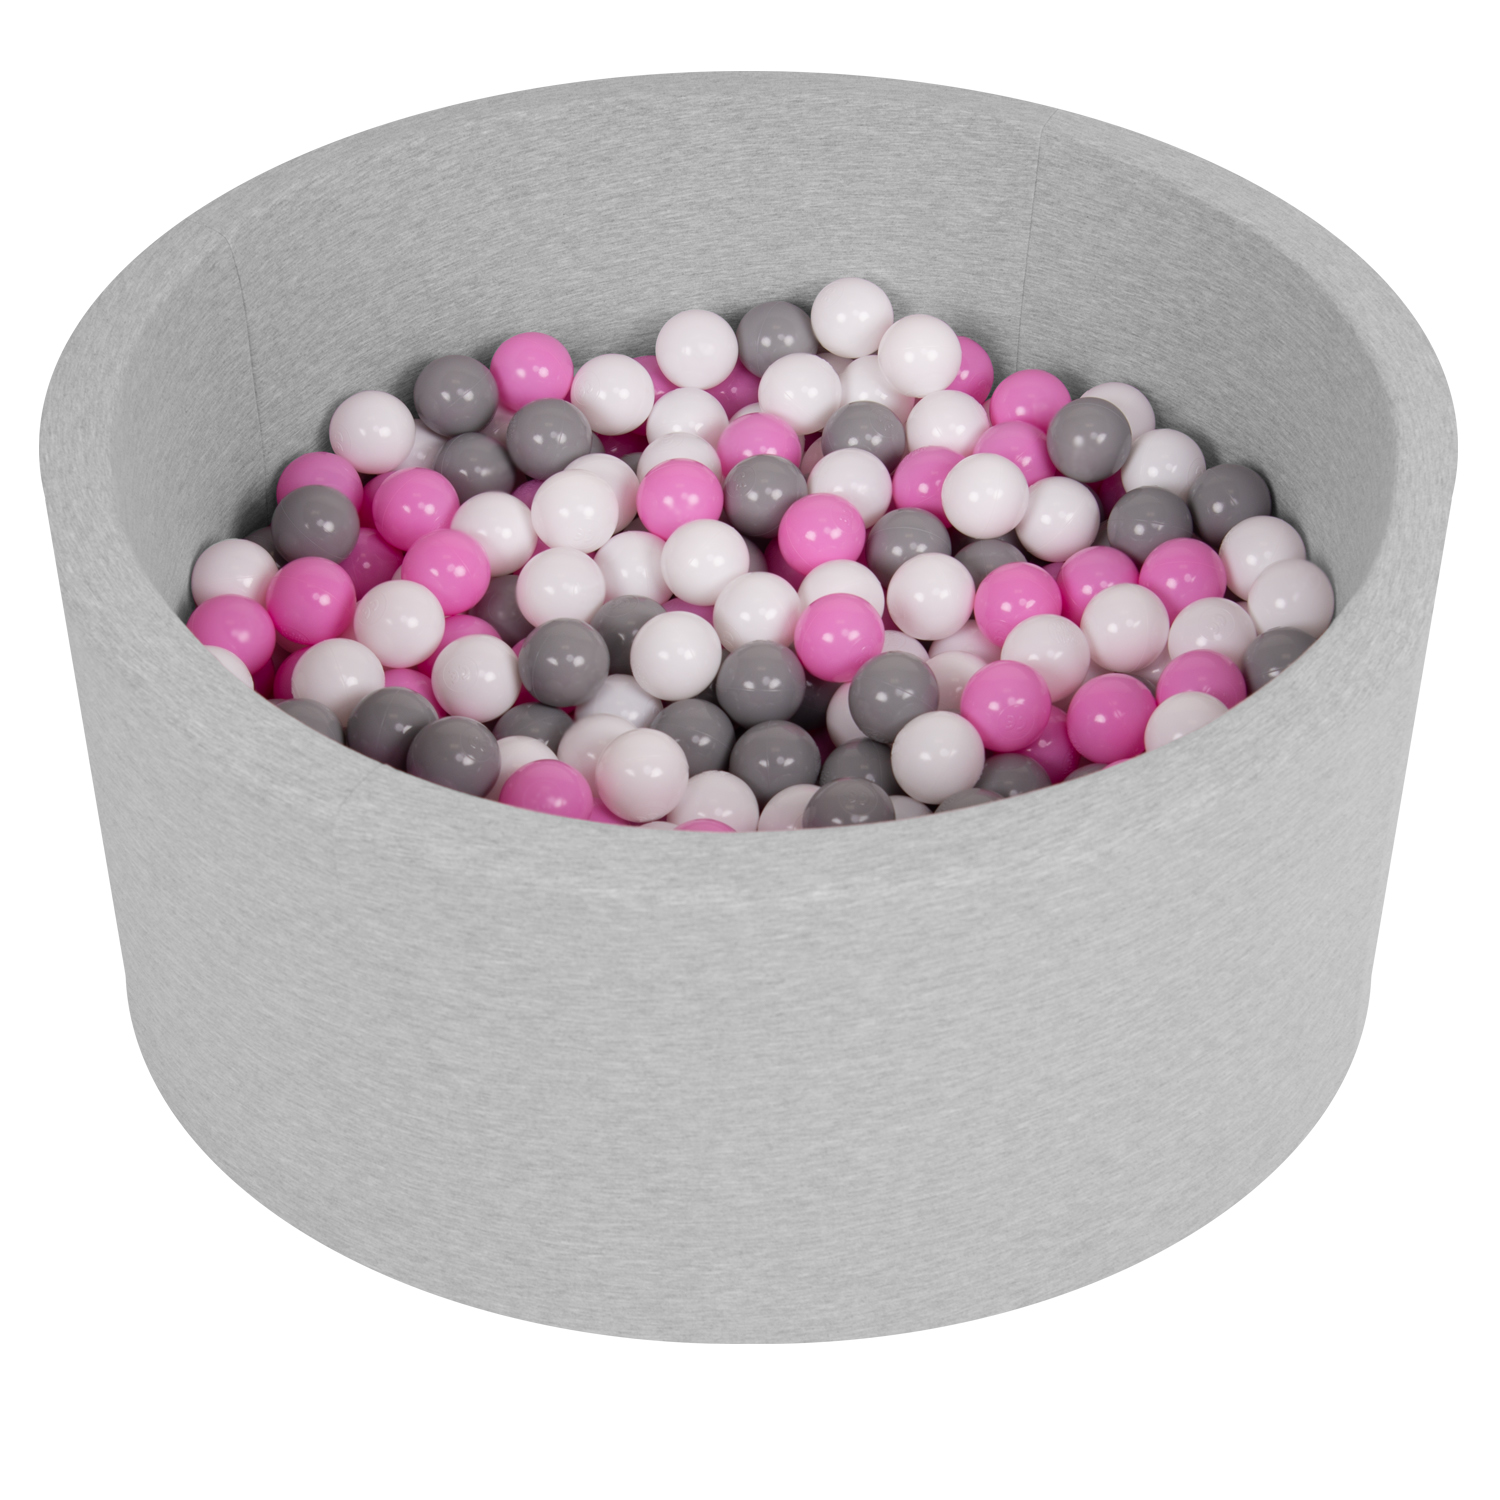 Selonis-Soft-Ball-Pit-Pool-Round-90x30cm-for-Baby-Toddler-200-Balls-Foam miniatuur 3